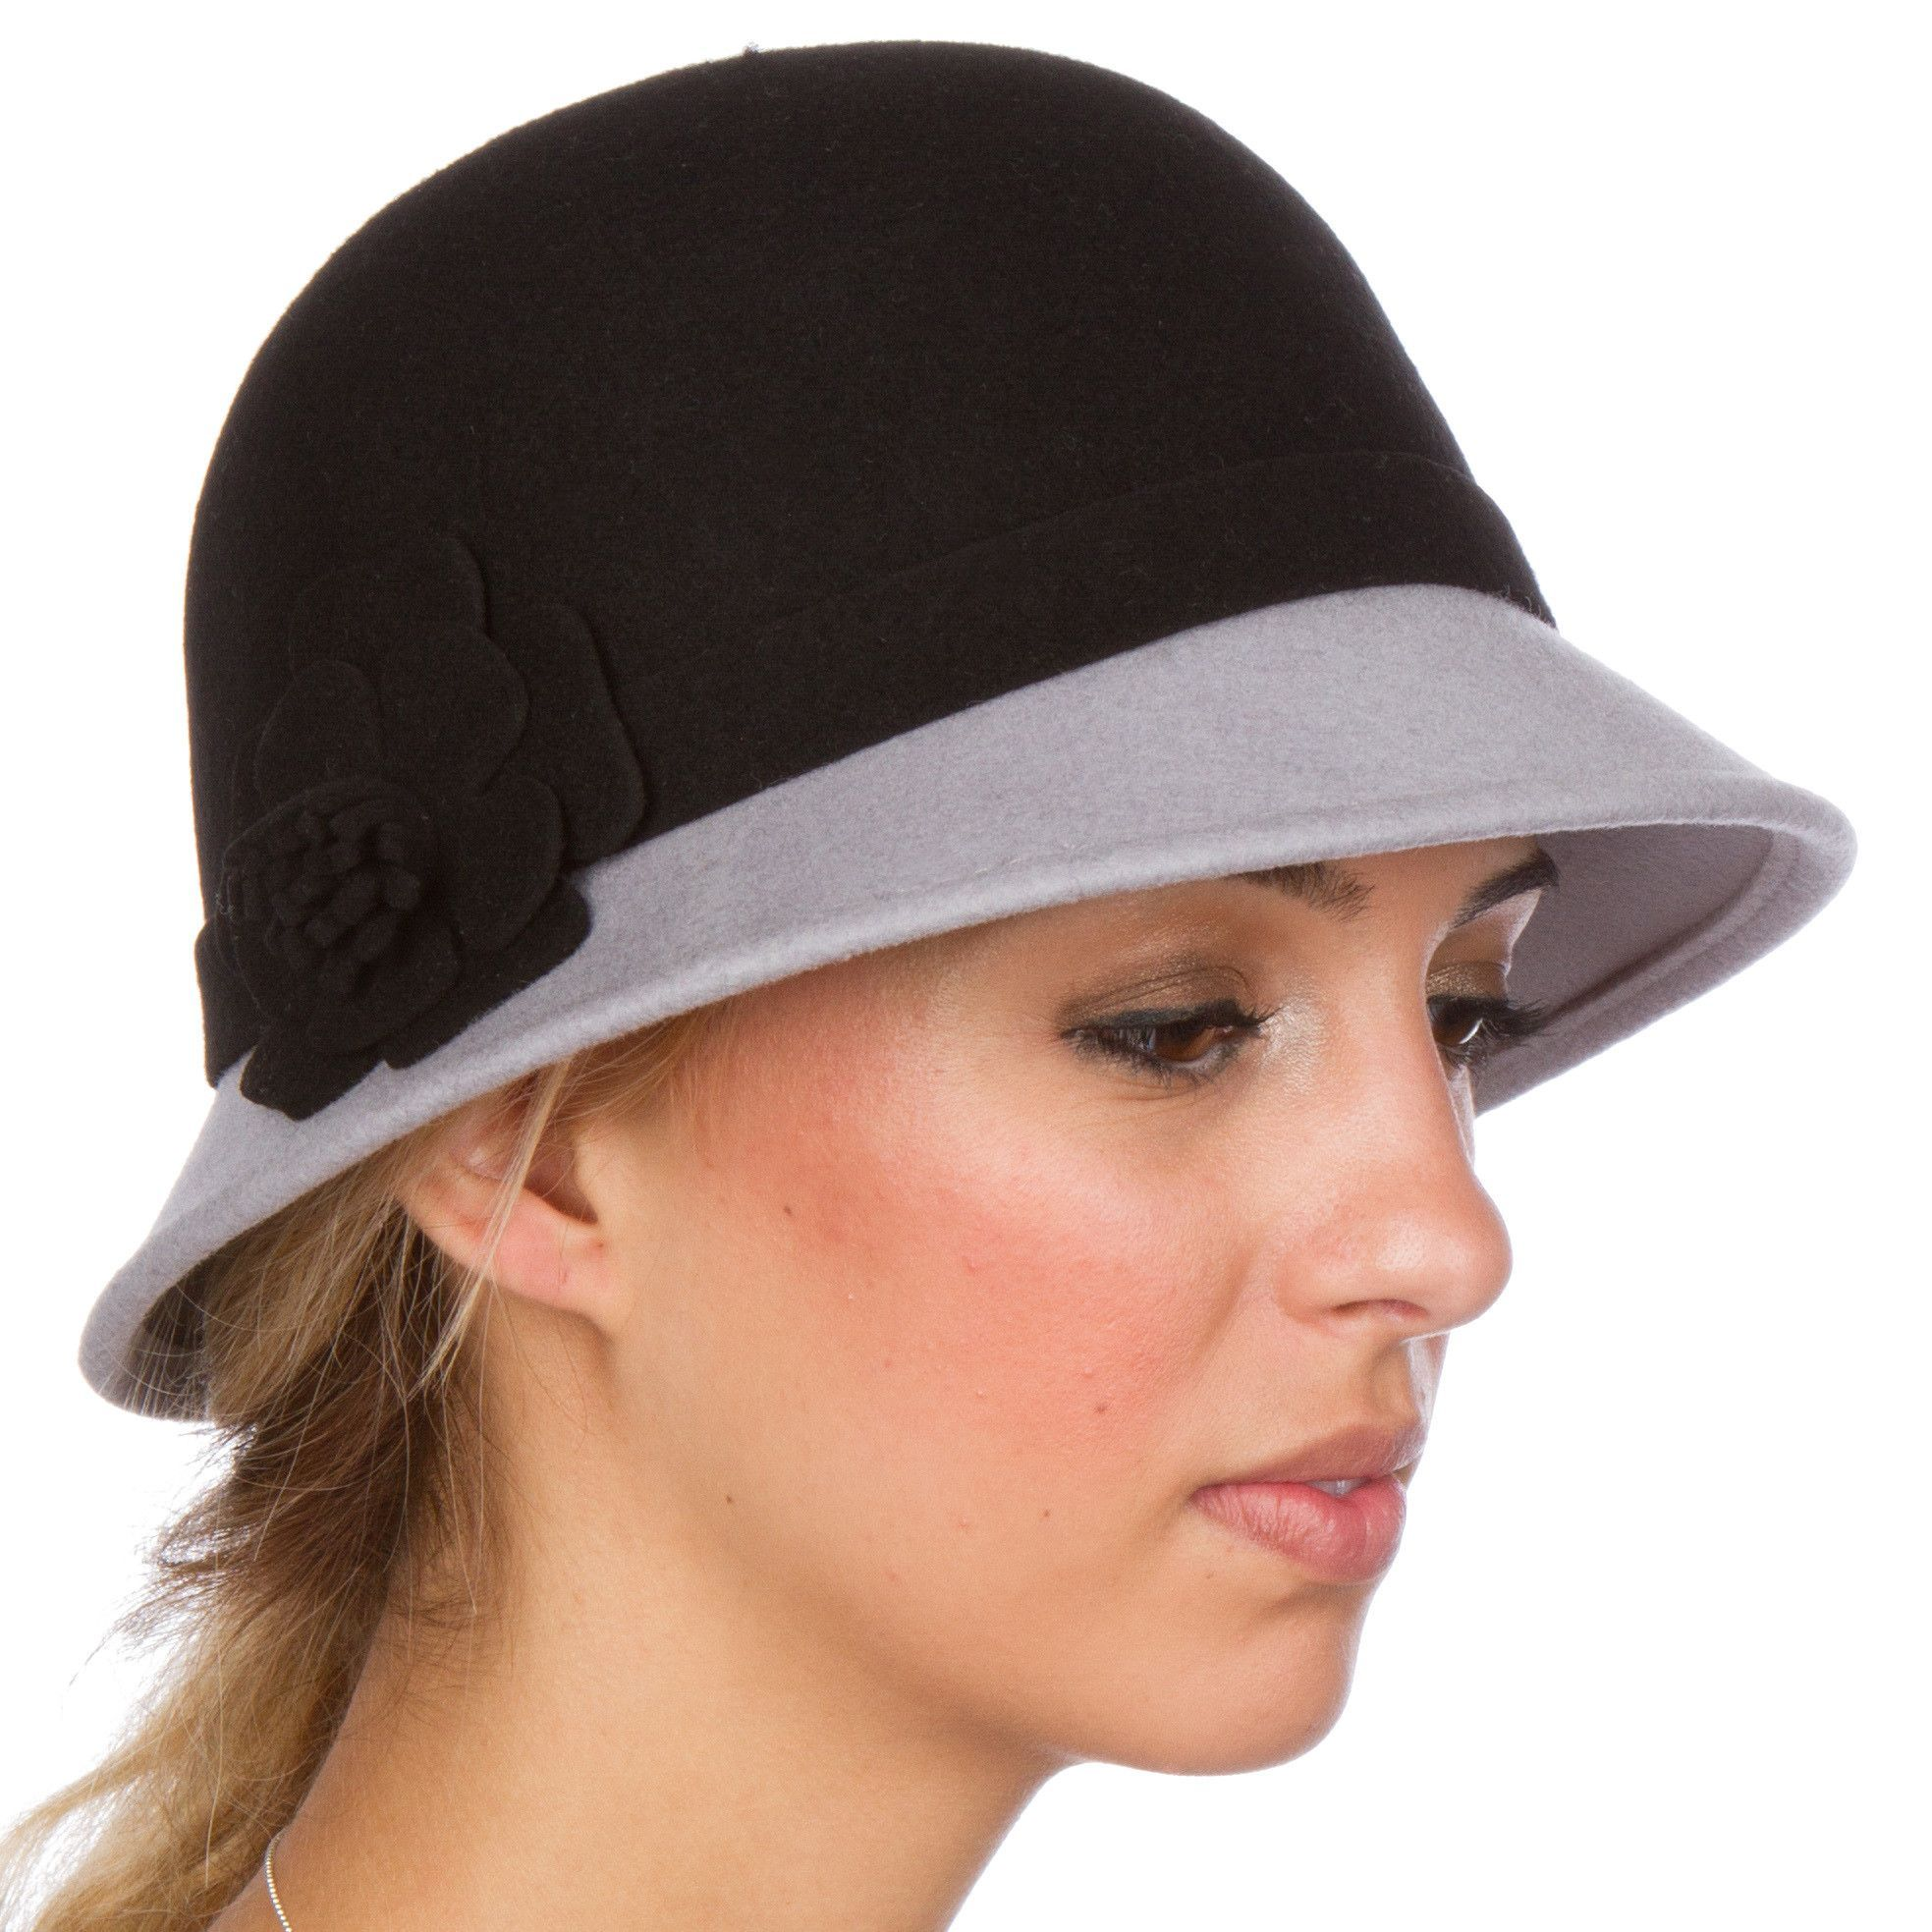 a74f7a1f5 Sakkas Sophia Vintage Style Wool Cloche Hat | Products | Cloche hat ...